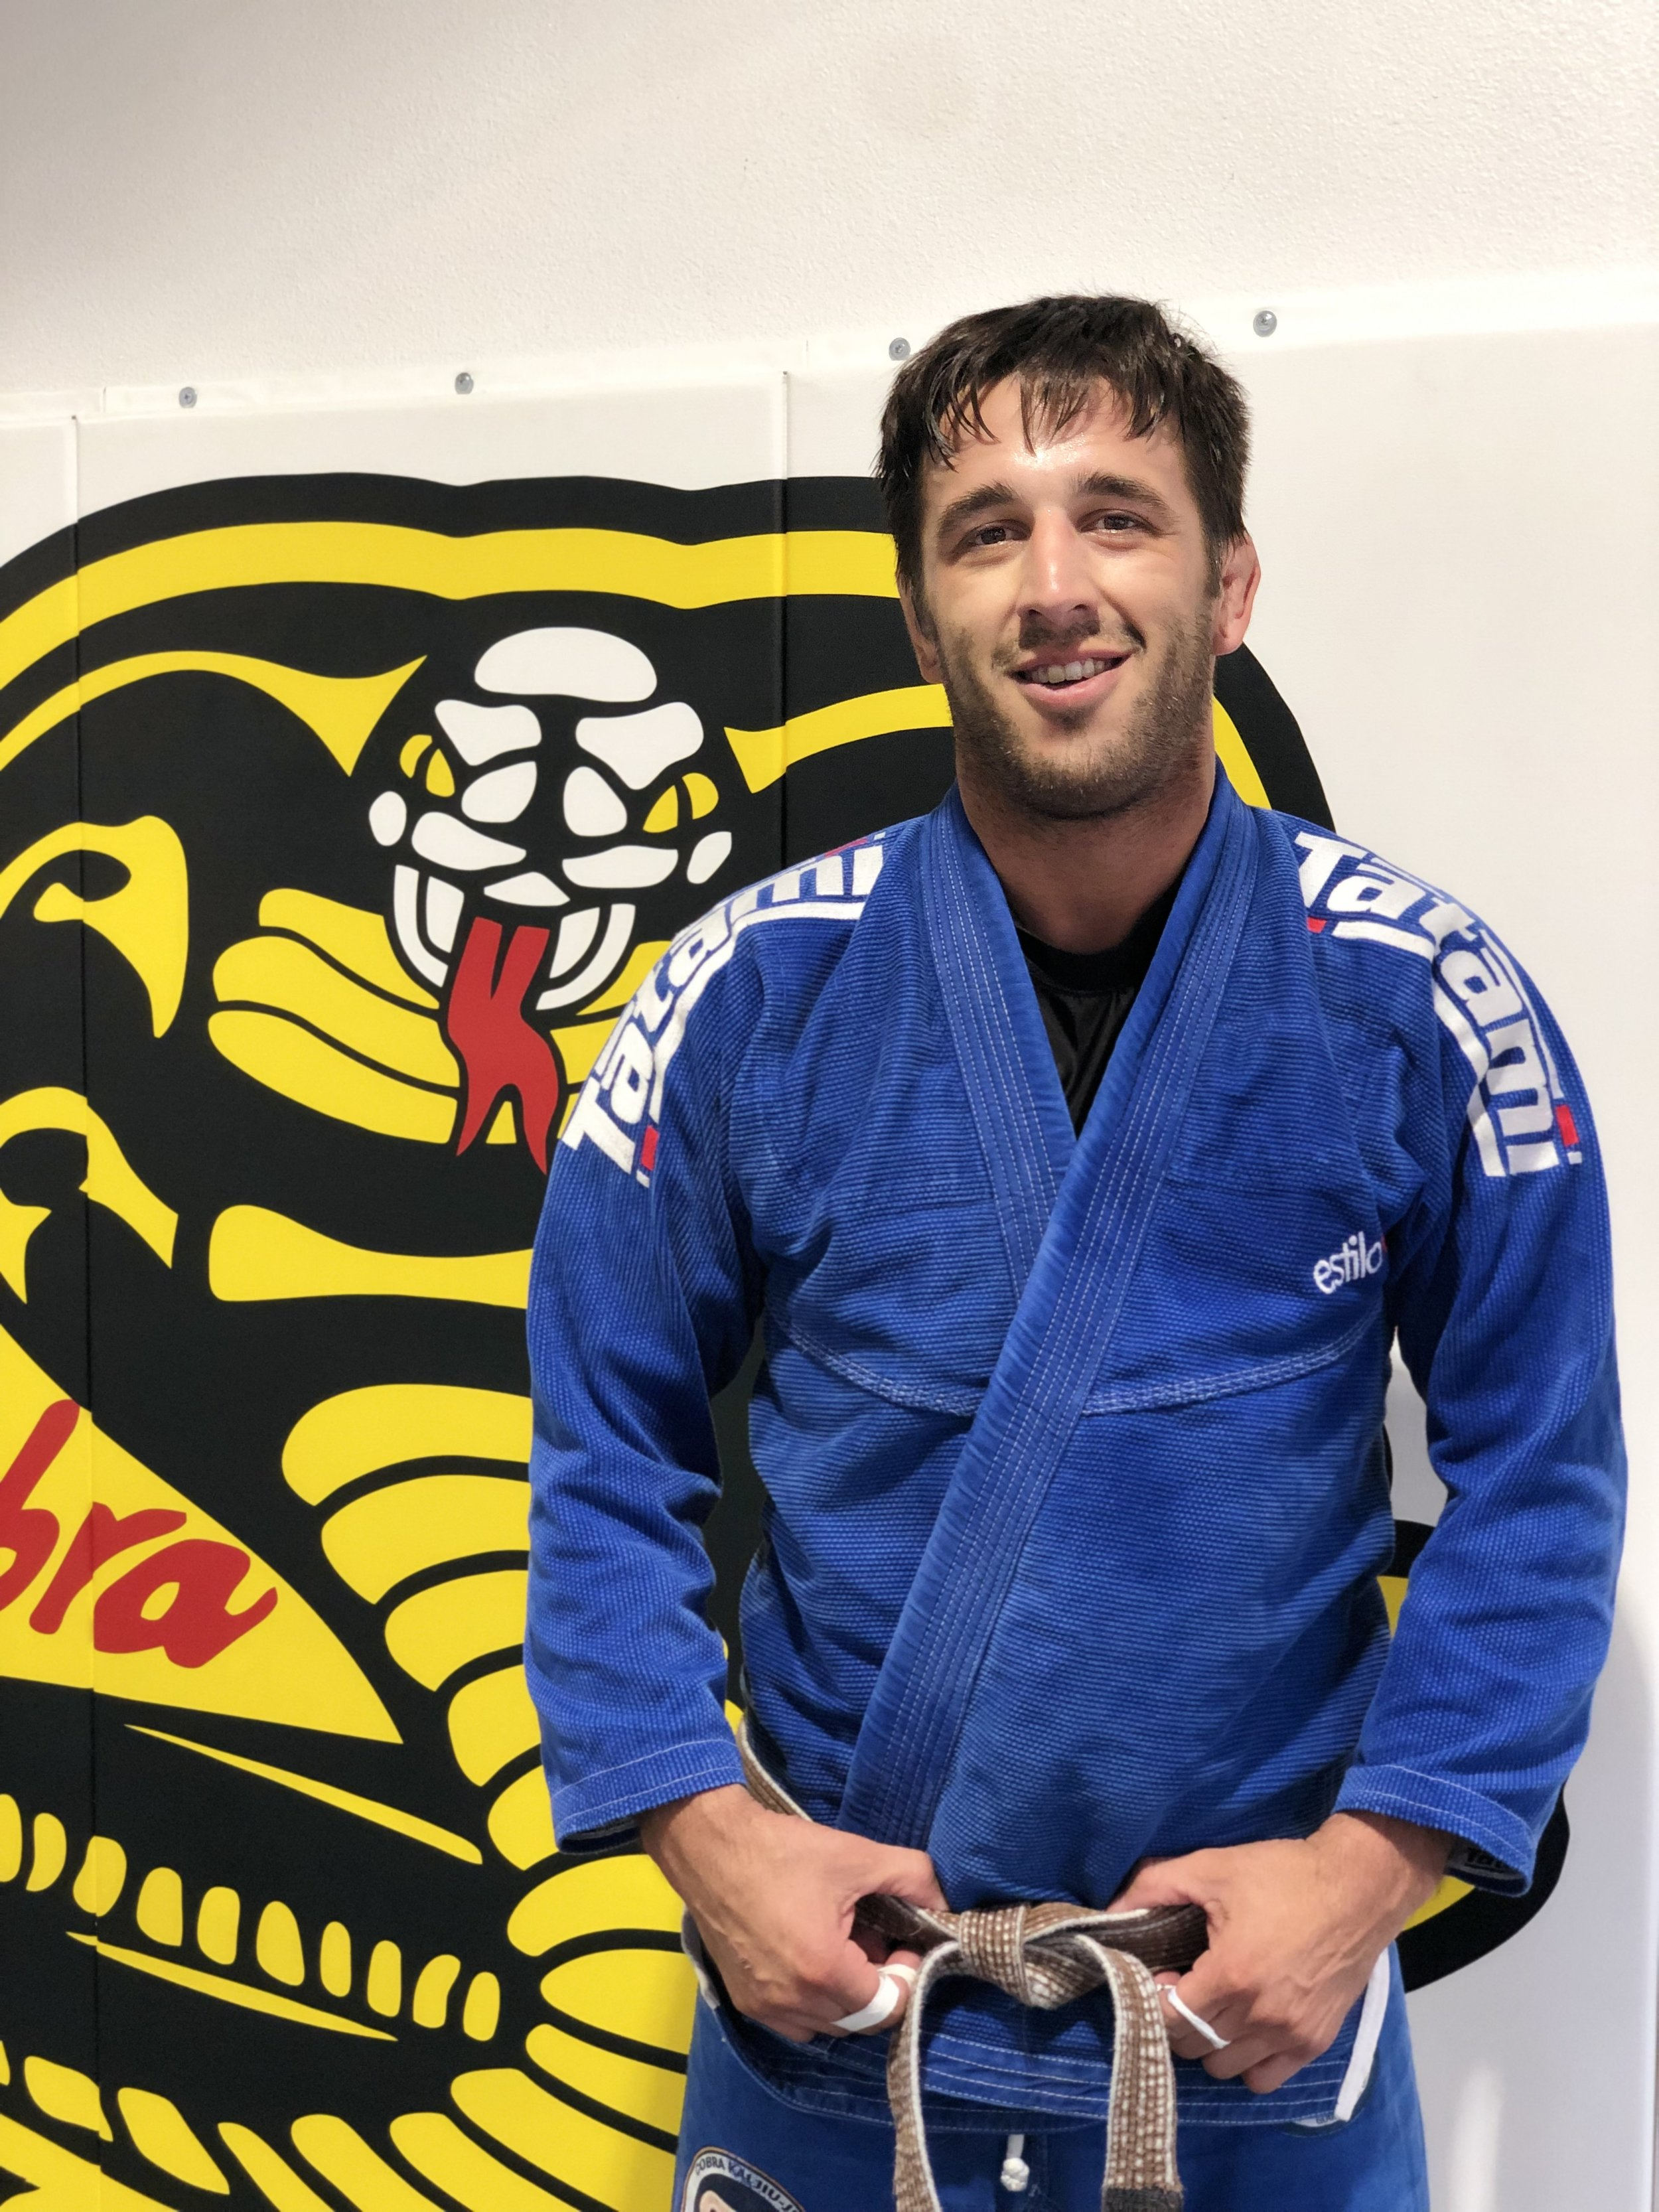 Joey Velasques   Brown Belt - Kids Instructor  Physical Education Instructor for Clark County Schools 2015 – Pan Am Bronze Medalist – Purple Belt Submission Hunter Pro Superfight Champion 2013 NAGA Gi and No Gi Champion 2013 Grappling X Champion